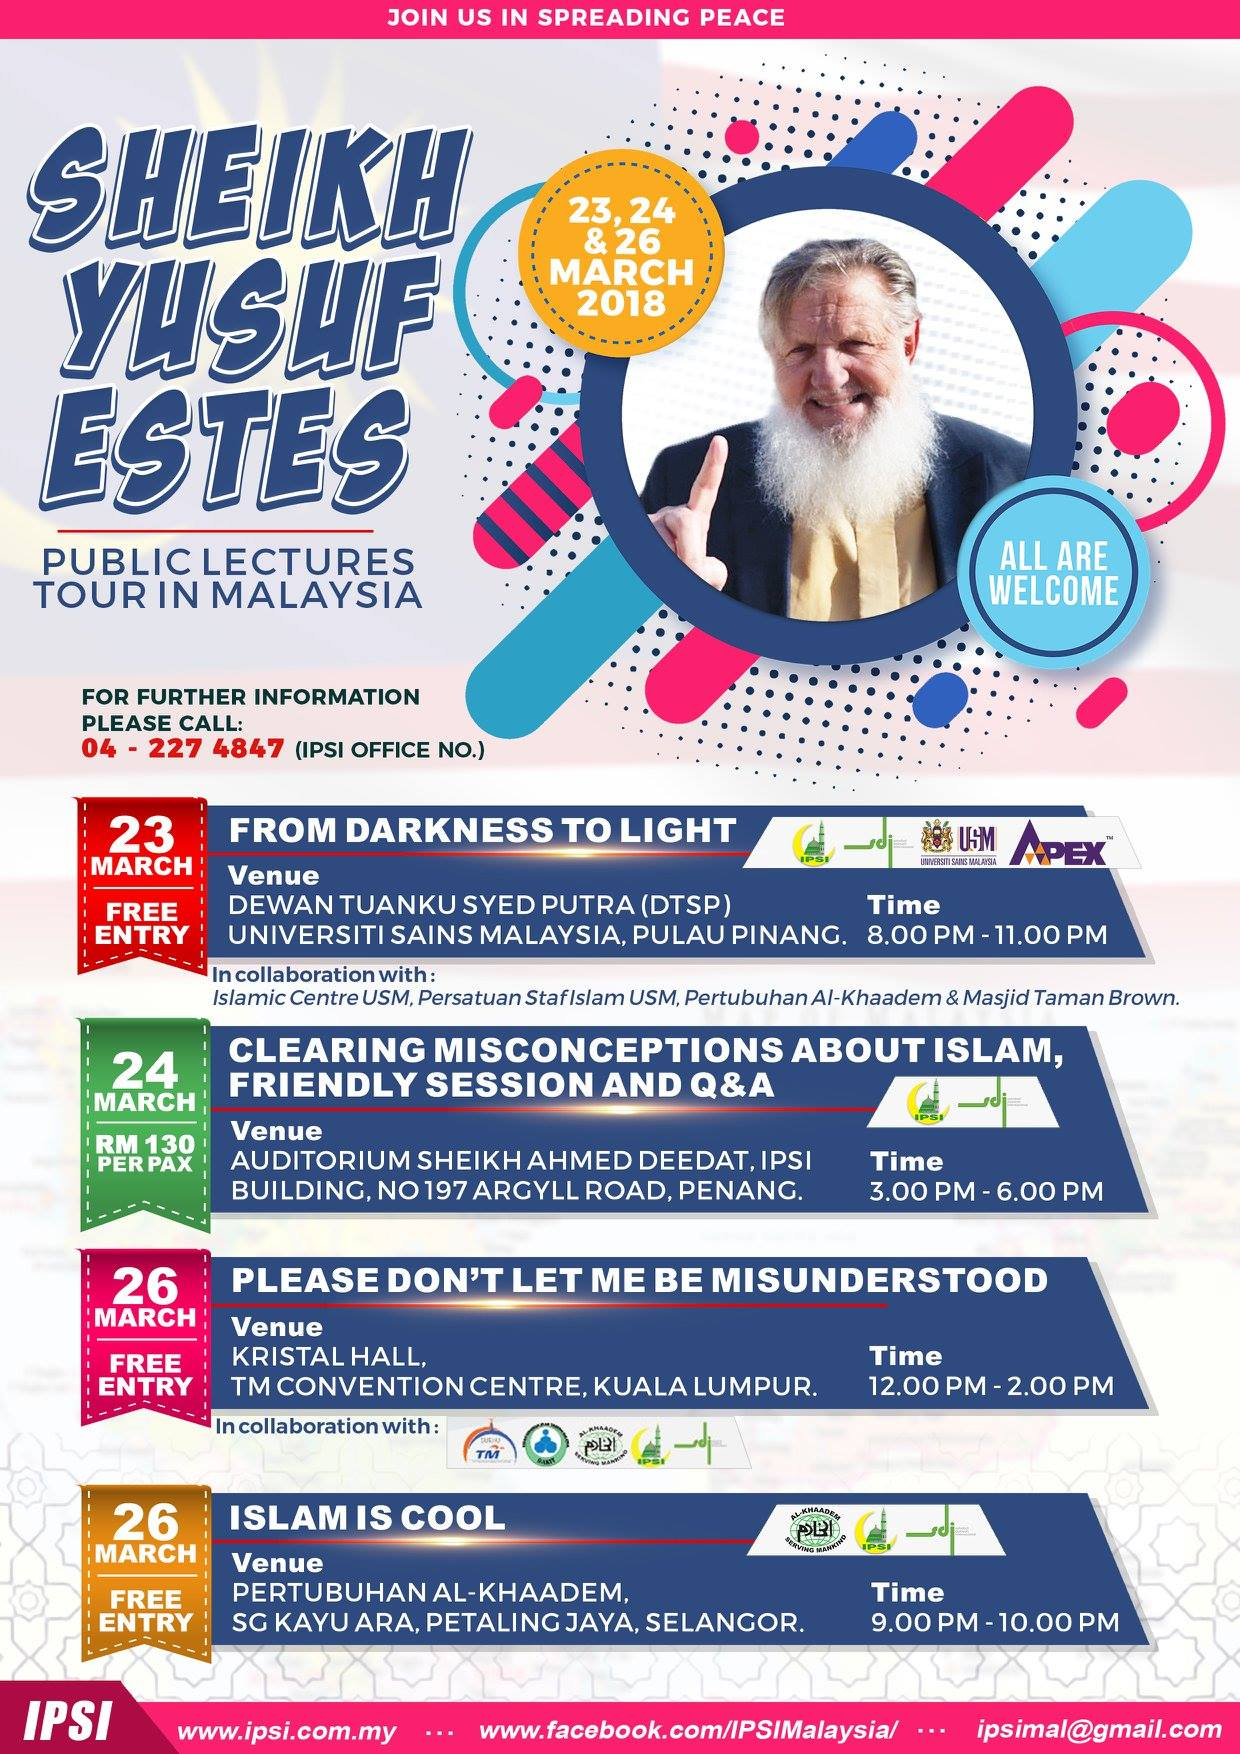 SHEIKH YUSUF ESTES PUBLIC LECTURES TOUR IN MALAYSIA : 23, 24 & 26 Mac 2018 :